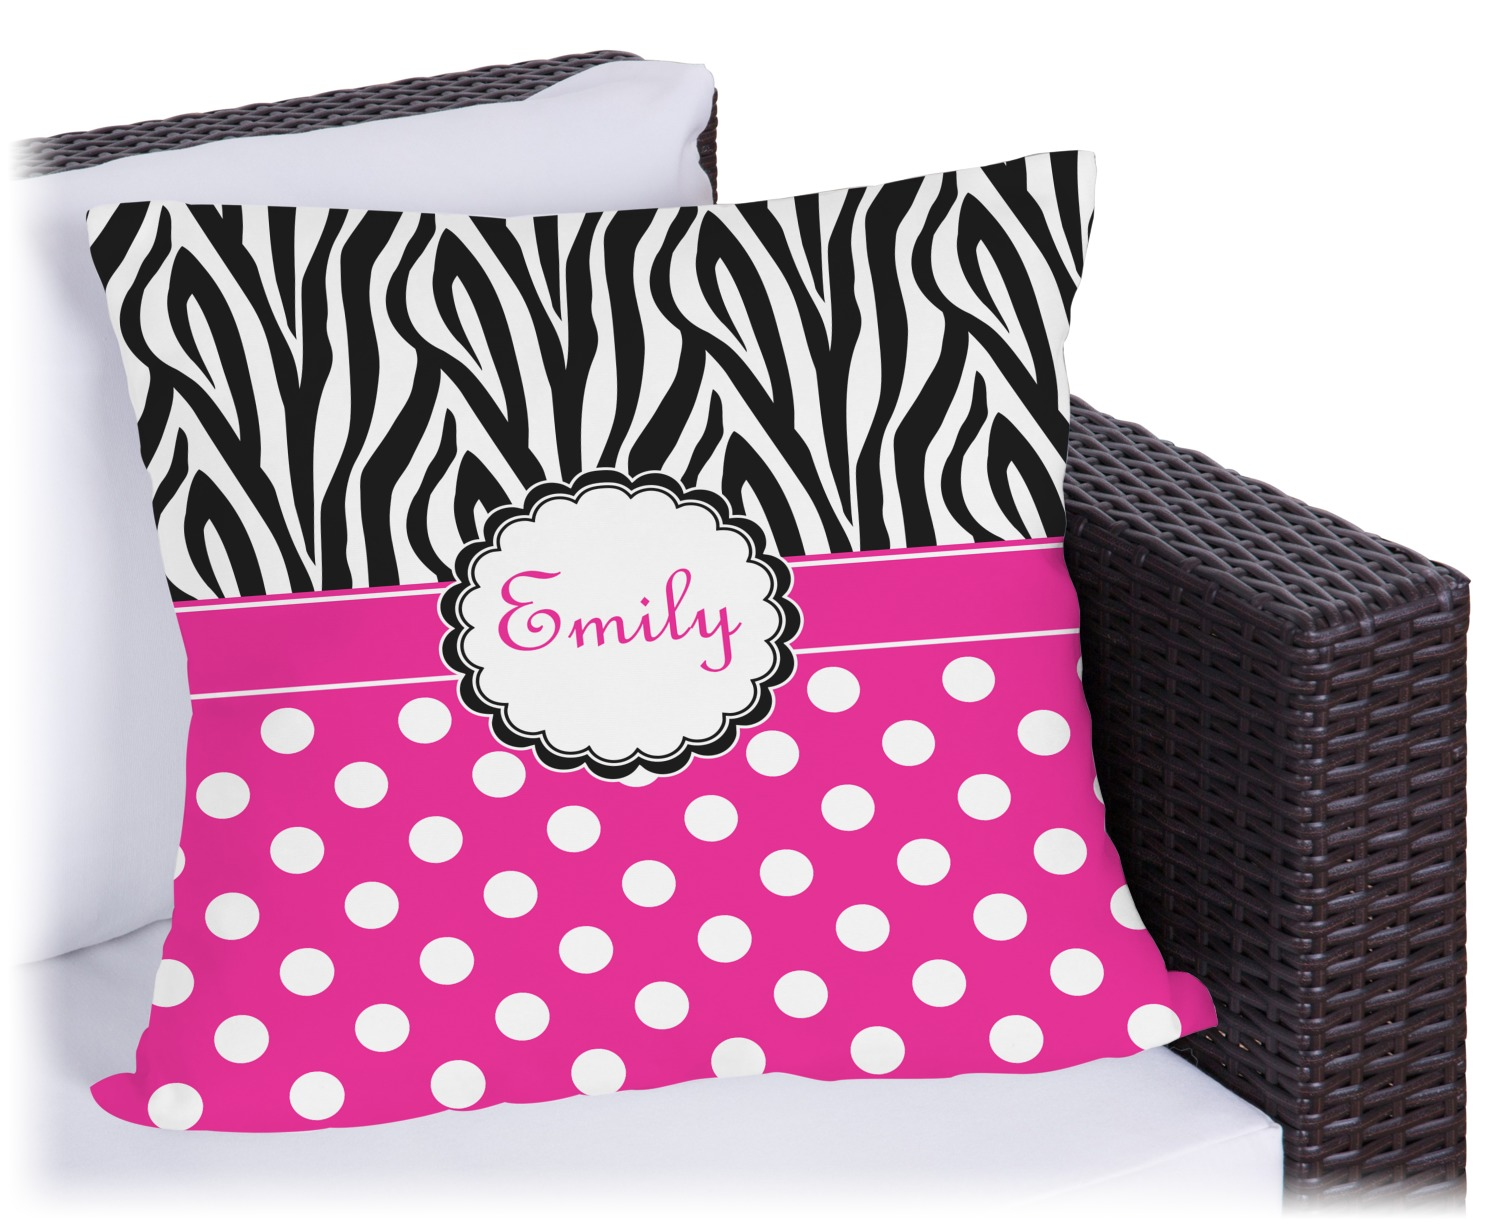 Zebra Print & Polka Dots Outdoor Pillow (Personalized) - YouCustomizeIt